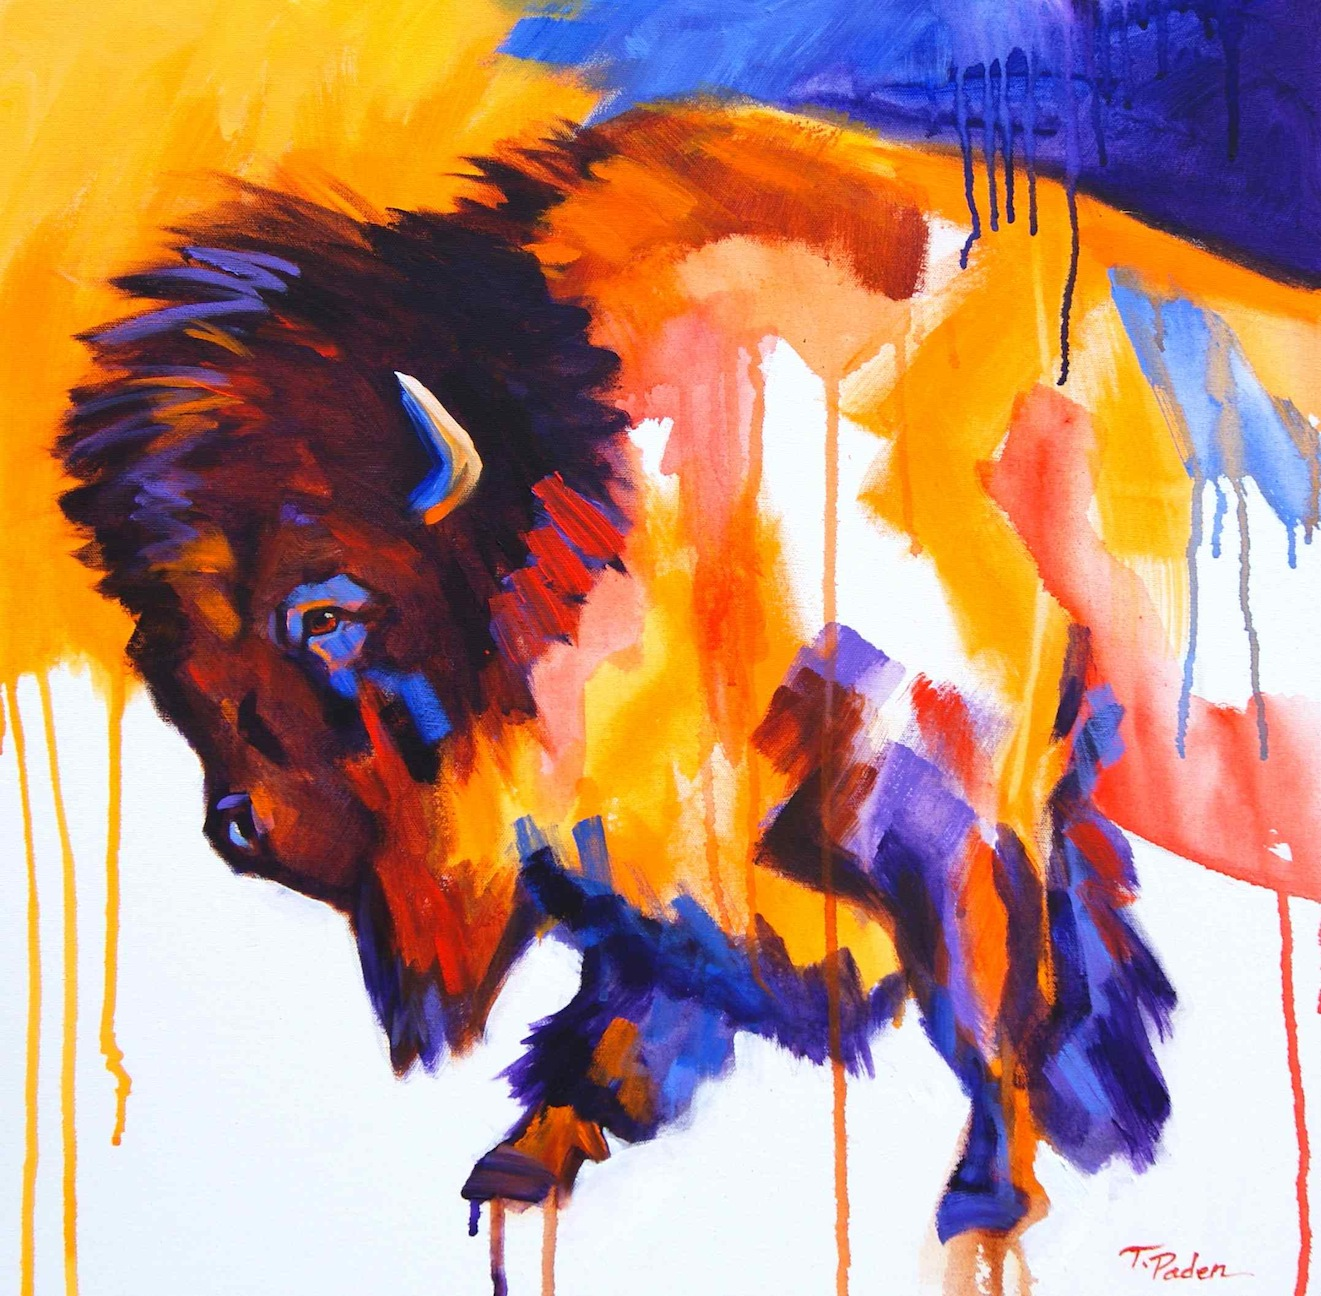 Paintings by Theresa Paden: Modern Western Art by Theresa Paden